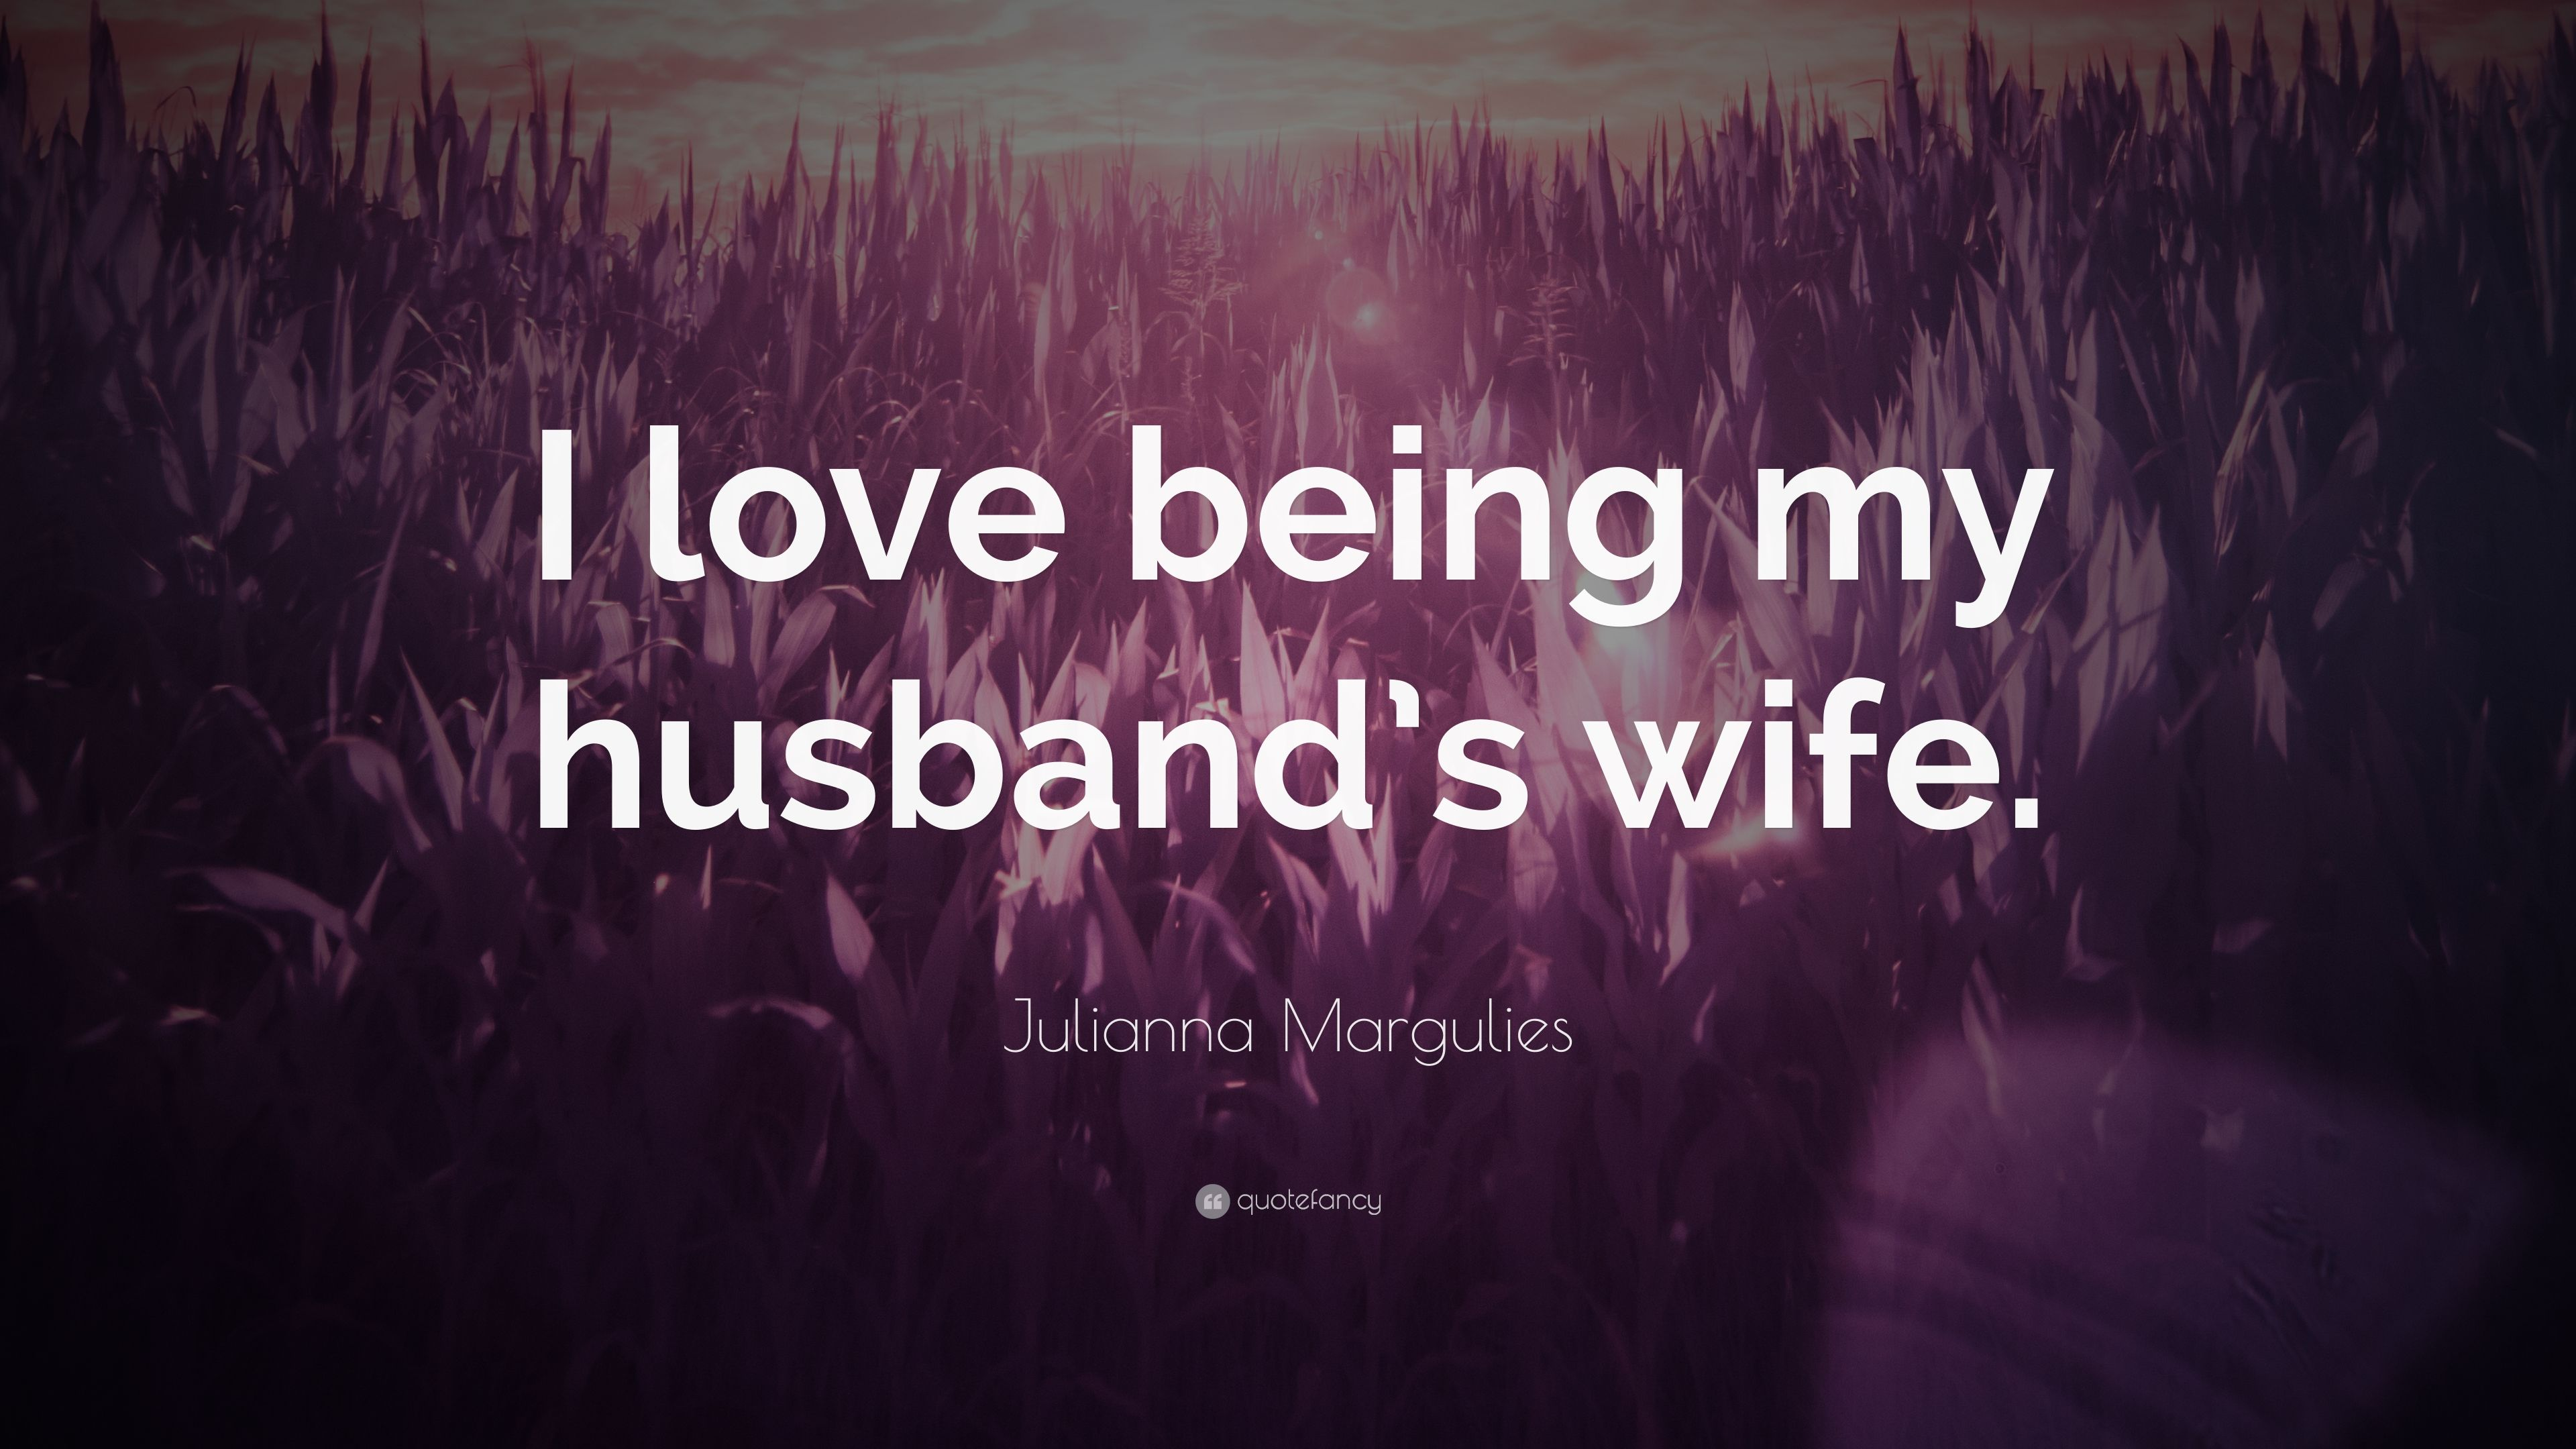 """Julianna Margulies Quotes 50 Wallpapers: Julianna Margulies Quote: """"I Love Being My Husband's Wife"""